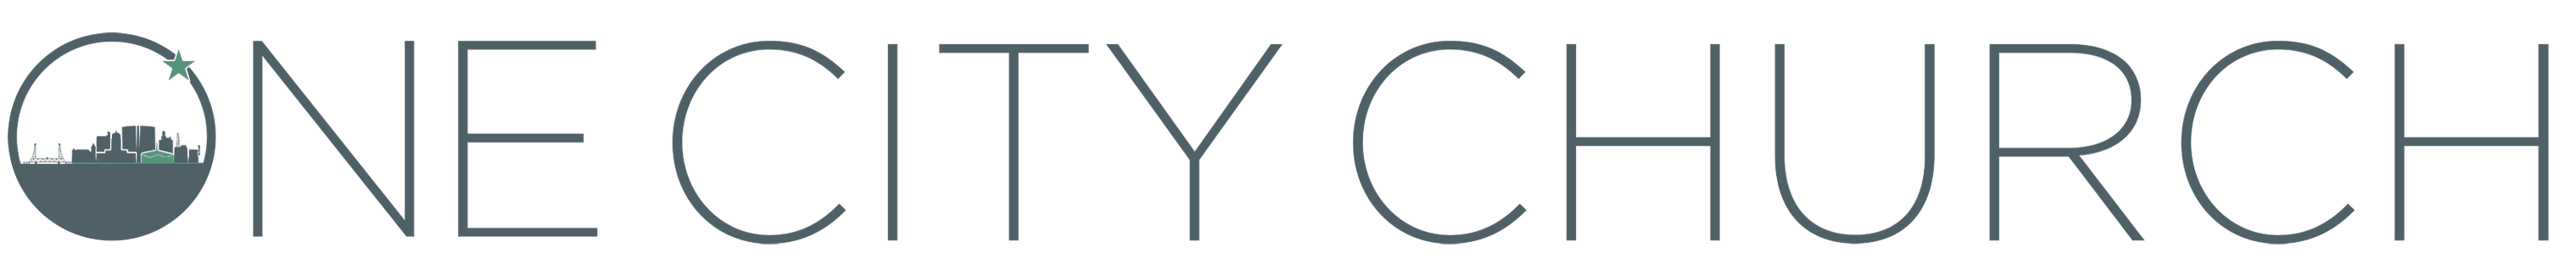 onecitychurch logo.png